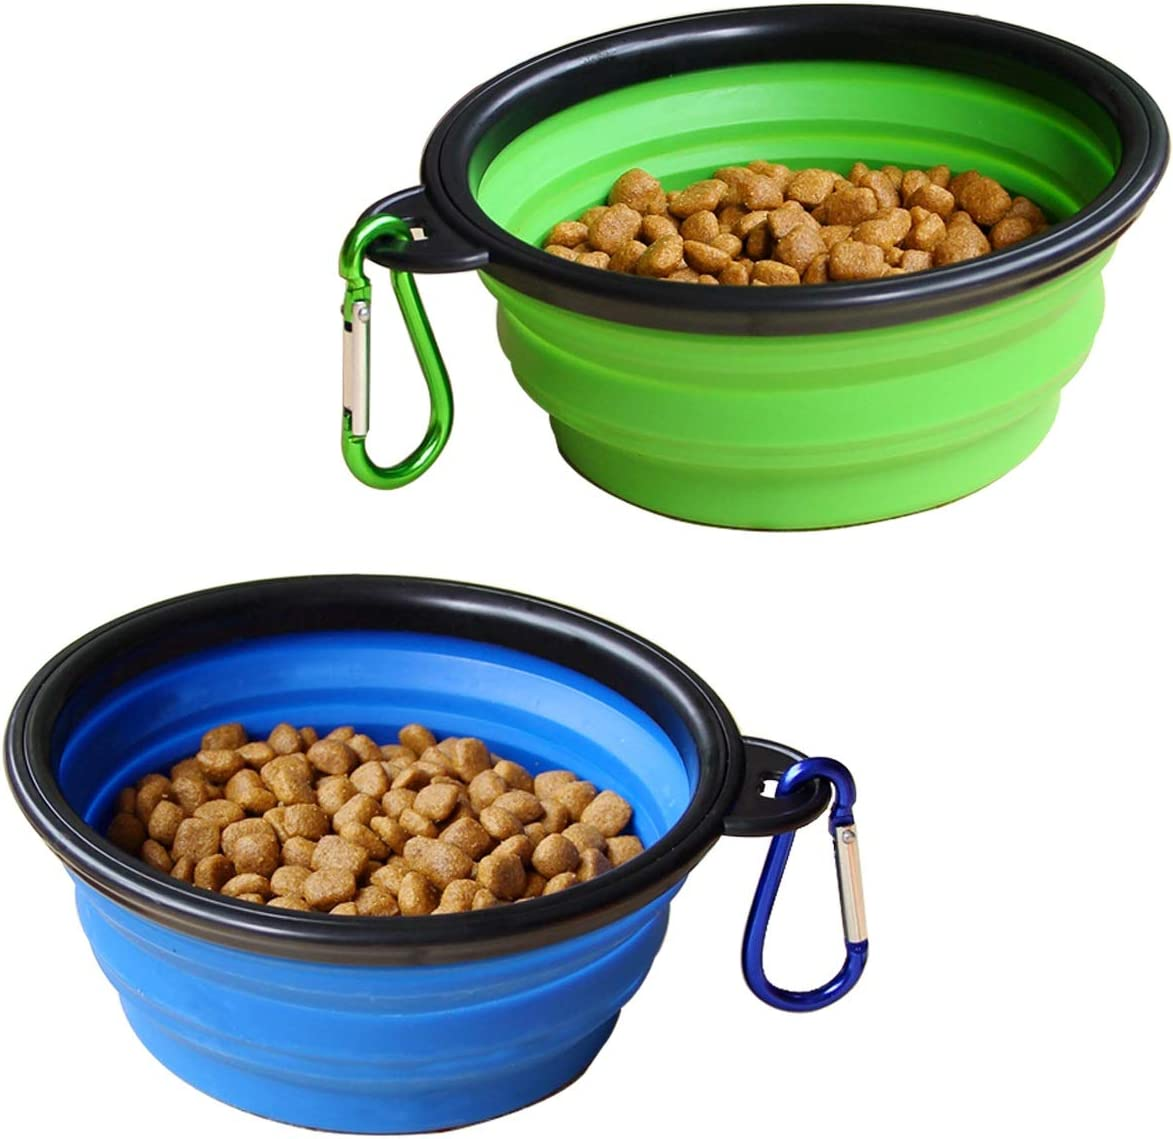 Collapsible Dog Bowl, 2 Pack Foldable Pet Travel Bowl, for Outdoor Camping Pet Food Water Bowl